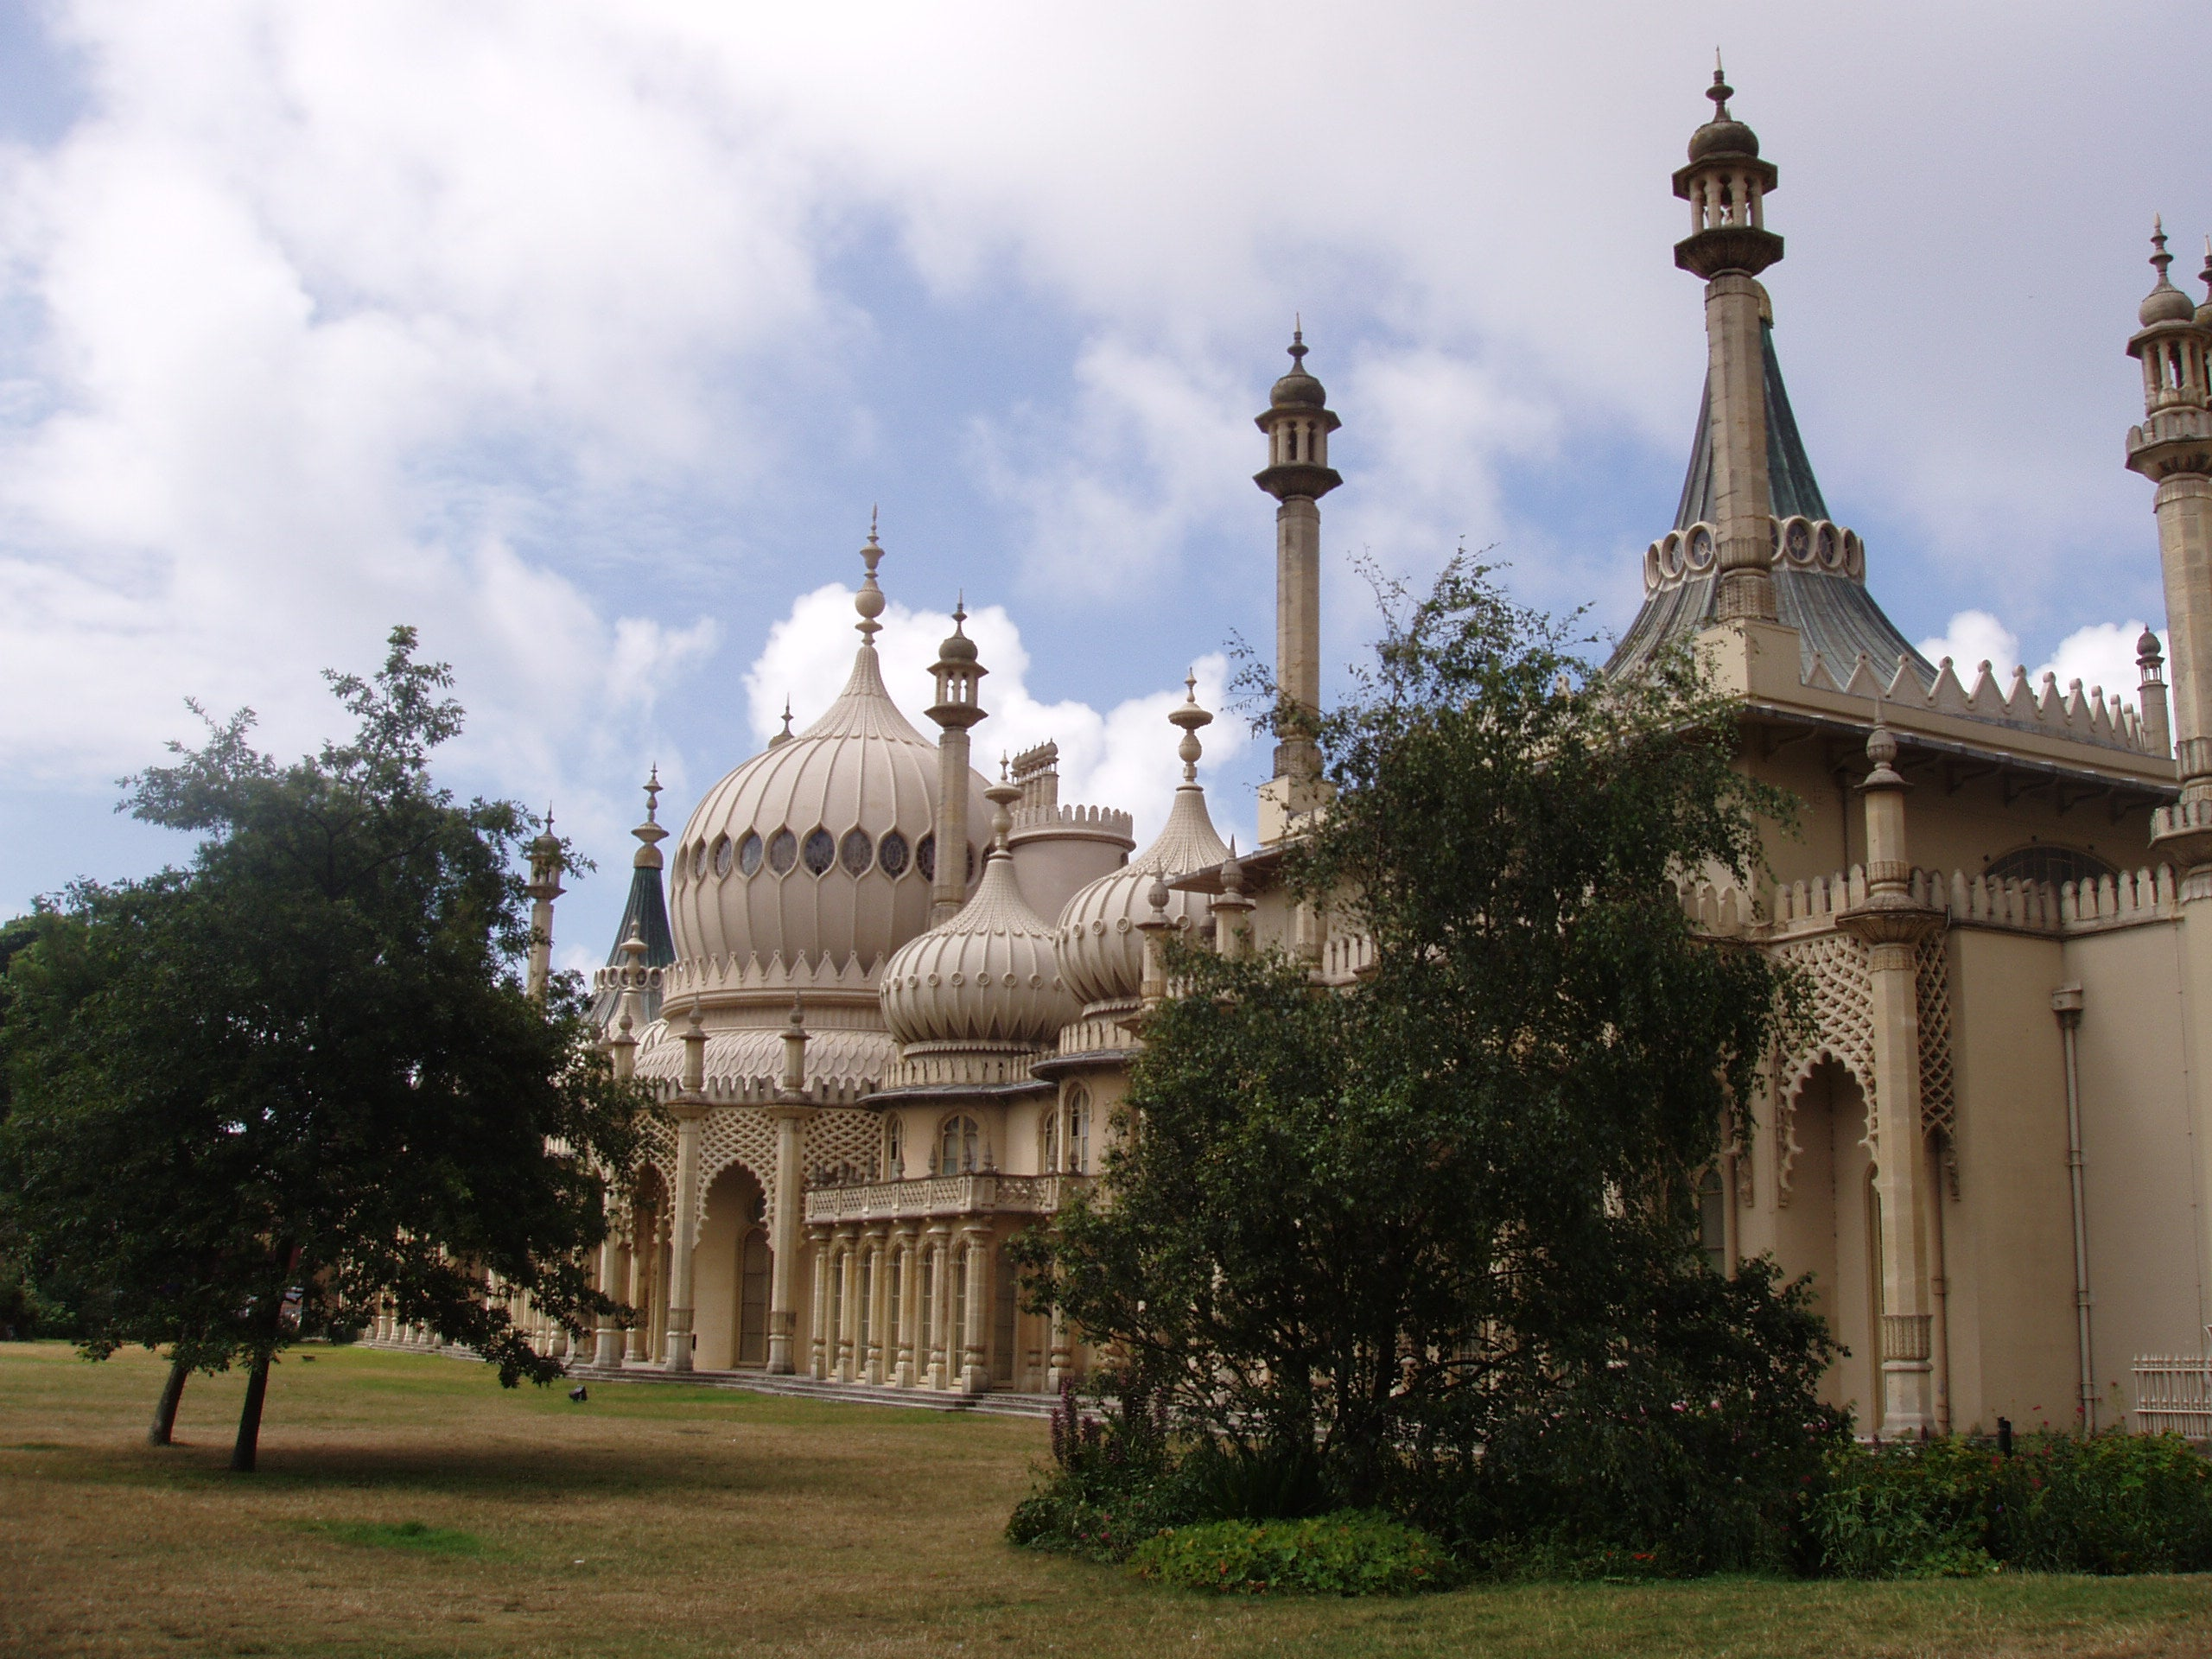 Edificio en Royal Pavilion